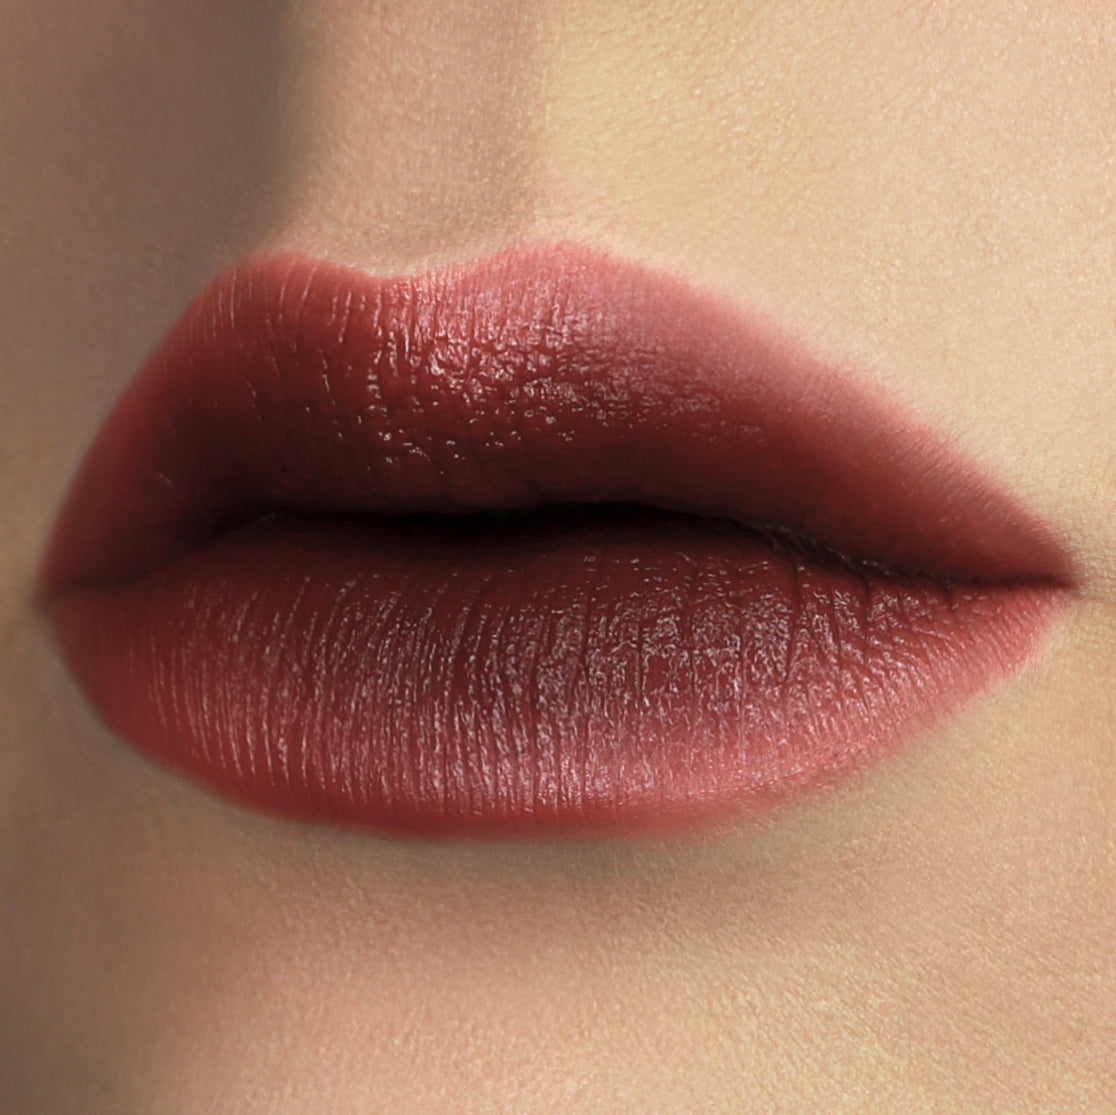 Carnal Forbidden Lipstick cruelty free - rose natural lipstick gradient lip